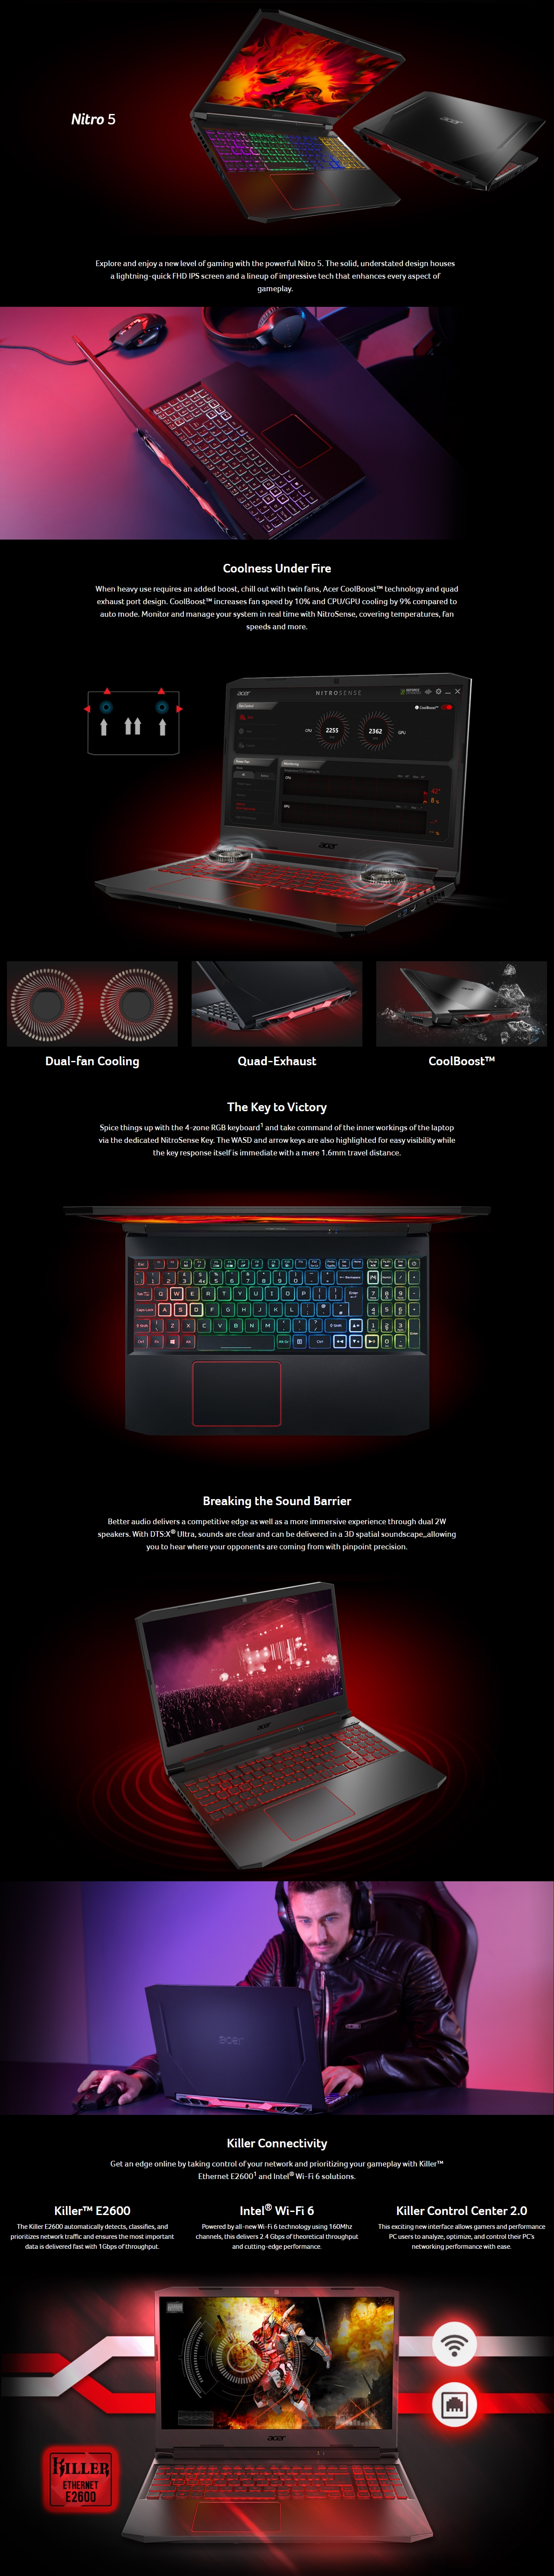 "A large marketing image providing additional information about the product Acer Nitro 5 Gaming 15.6"" i7 GTX 1650 Ti Windows 10 Gaming Notebook - Additional alt info not provided"